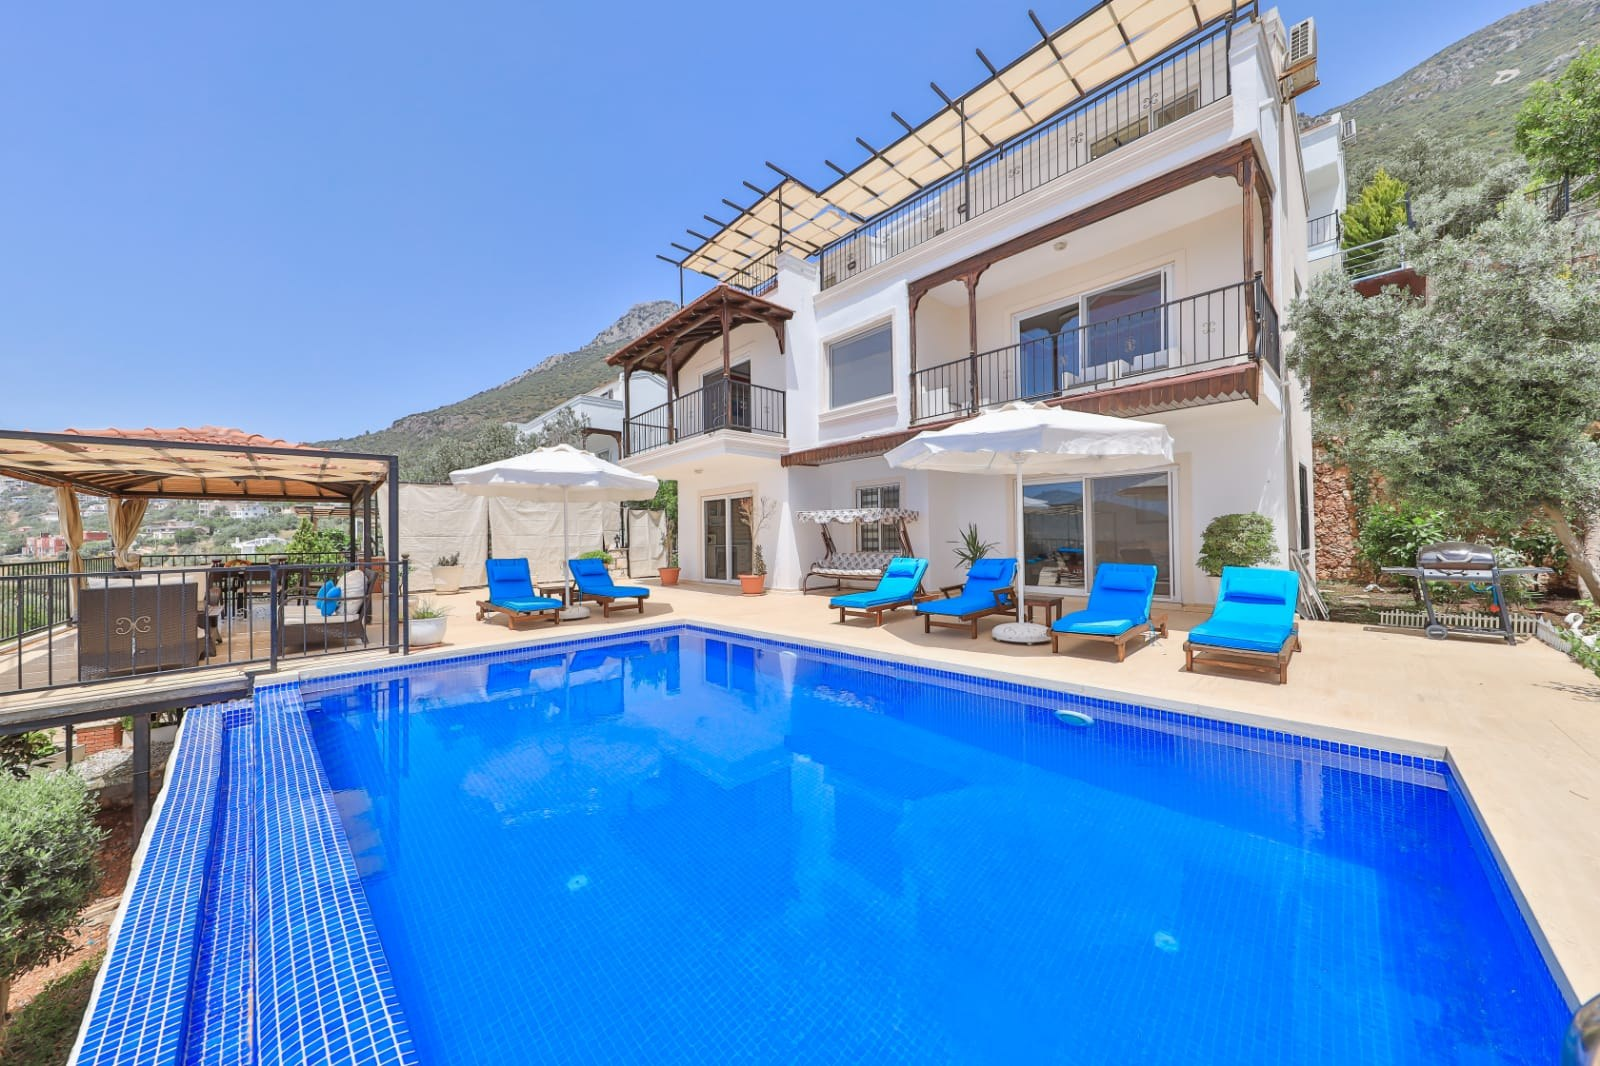 Three Bedroom Villa with Fabulous view in Kalkan for sale